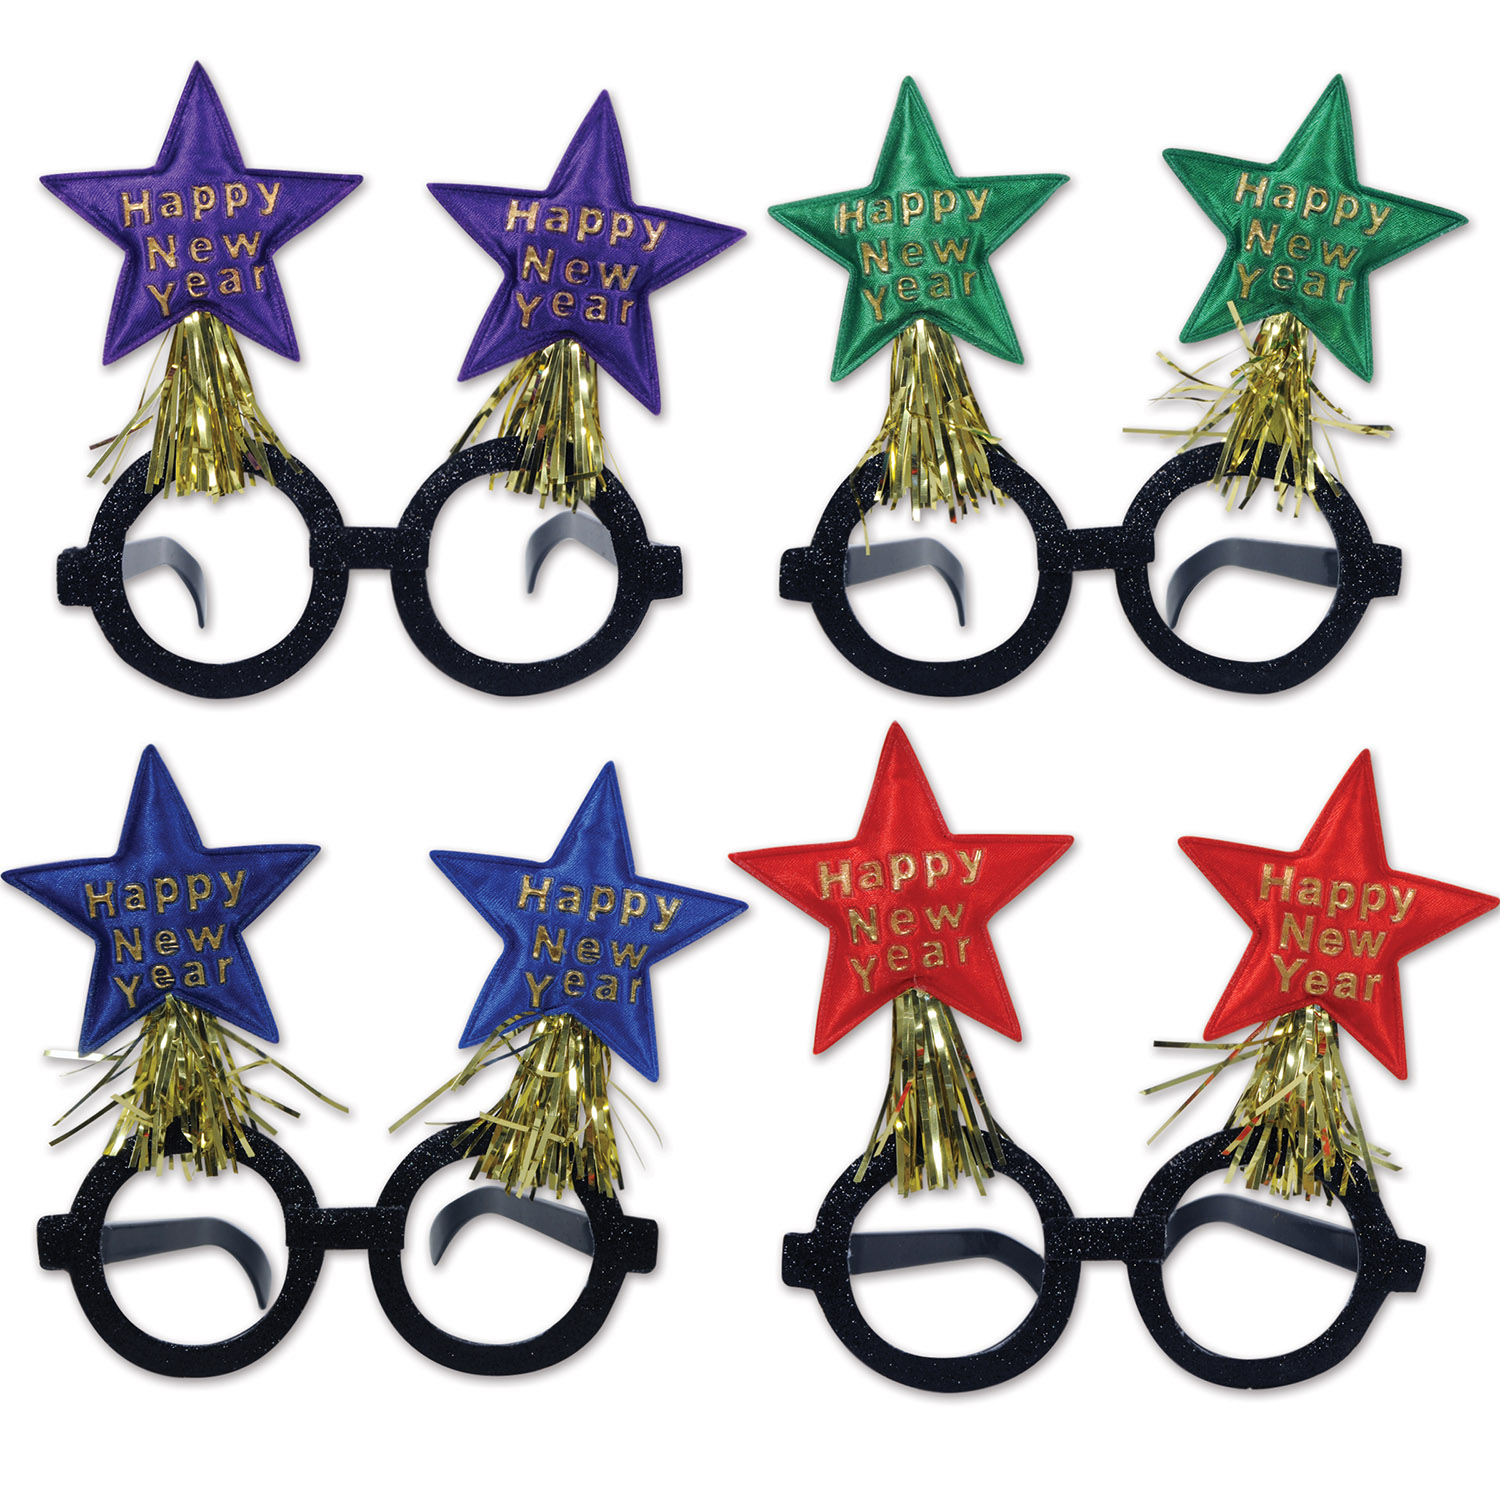 Glittered New Year Star Bopper Glasses asstd colors